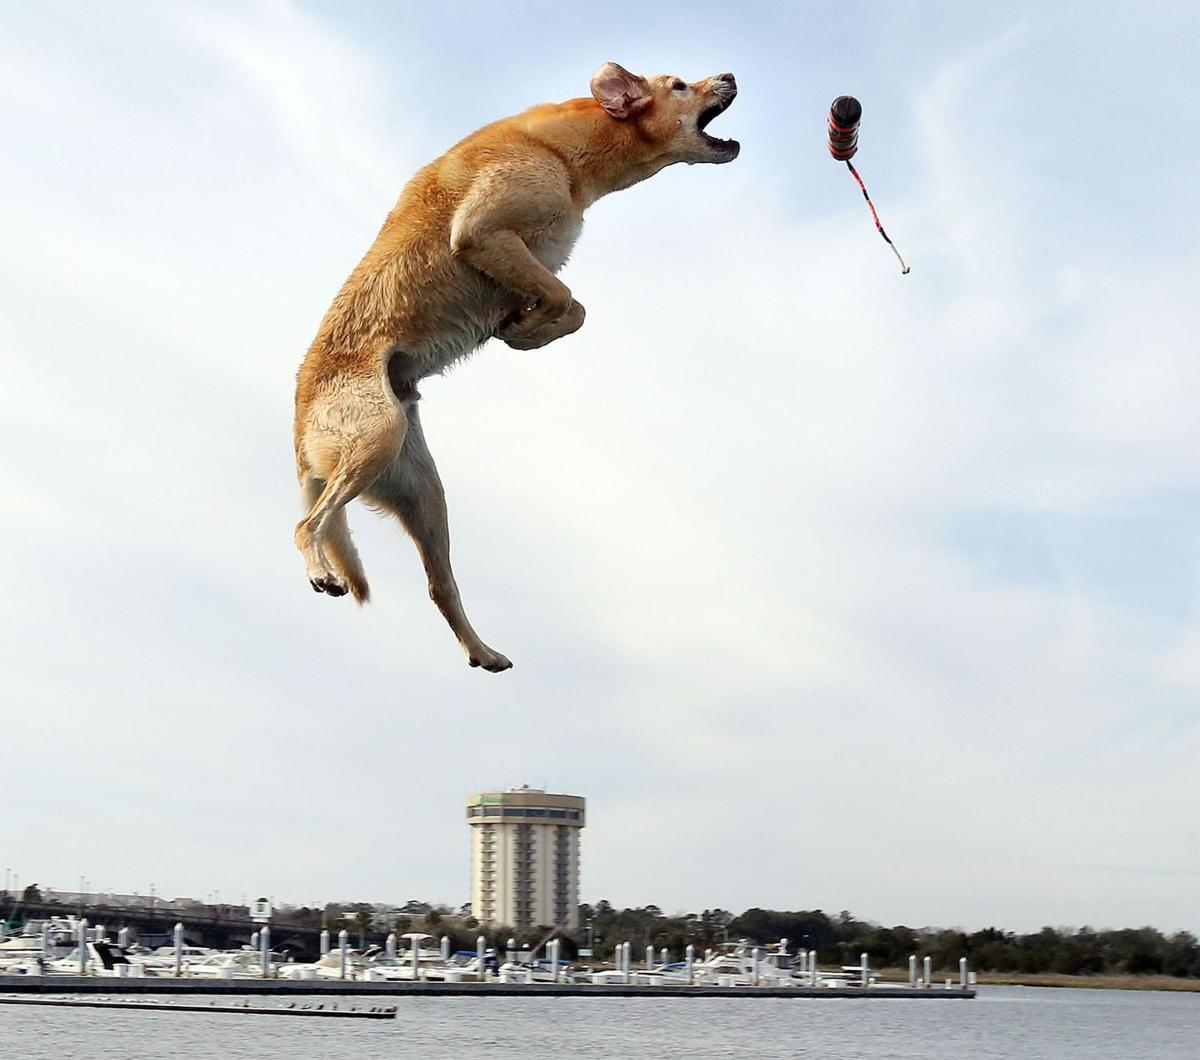 DockDogs continues to make a big splash